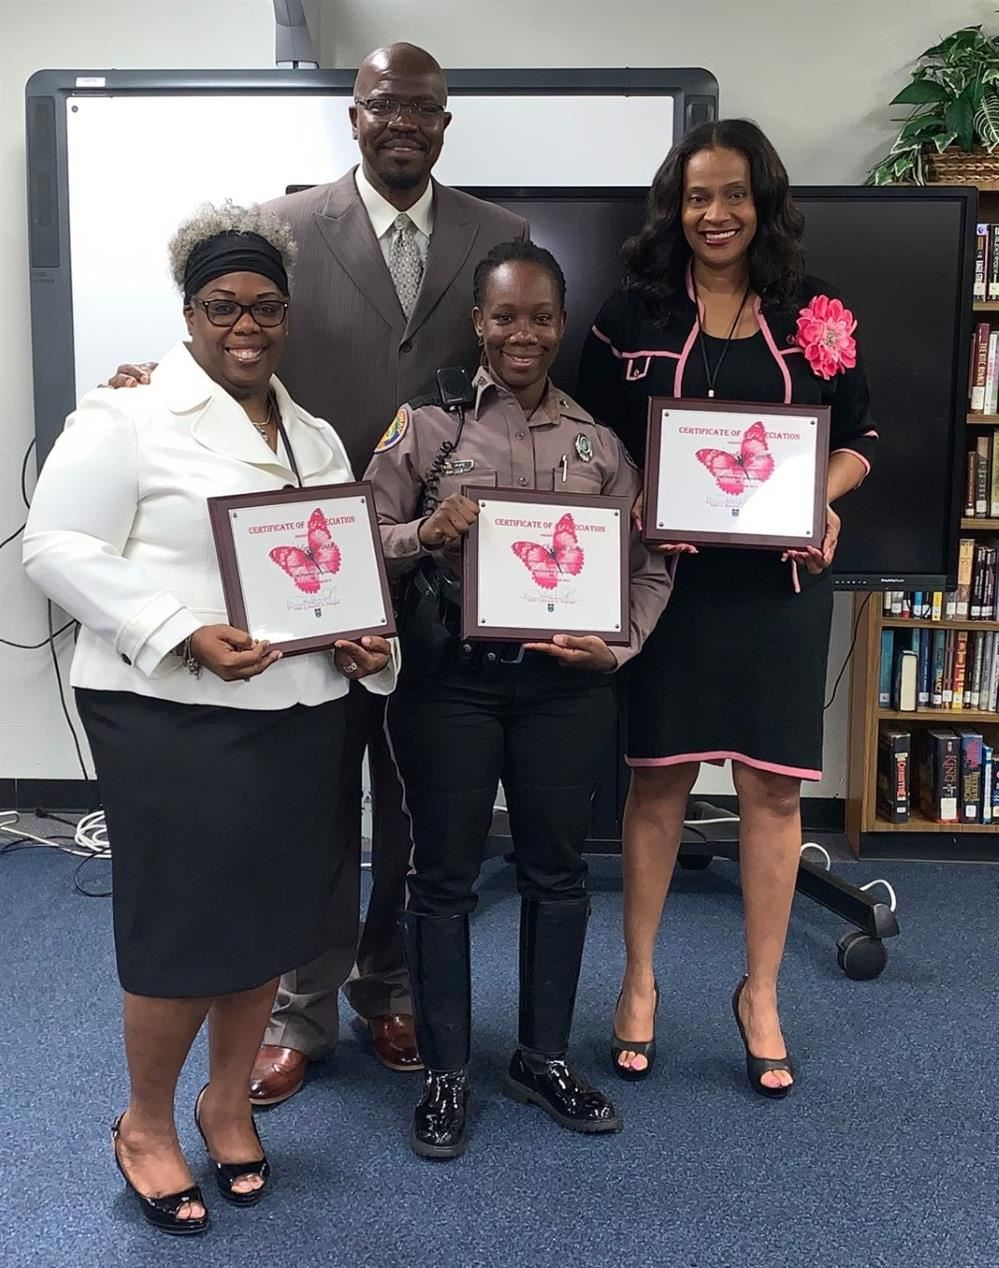 Living Your Best Life Seminar Guests Dr. Valerie Wanza, FHP Trooper Chantale Jones, and School Board Member Dr. Rosalind Osg